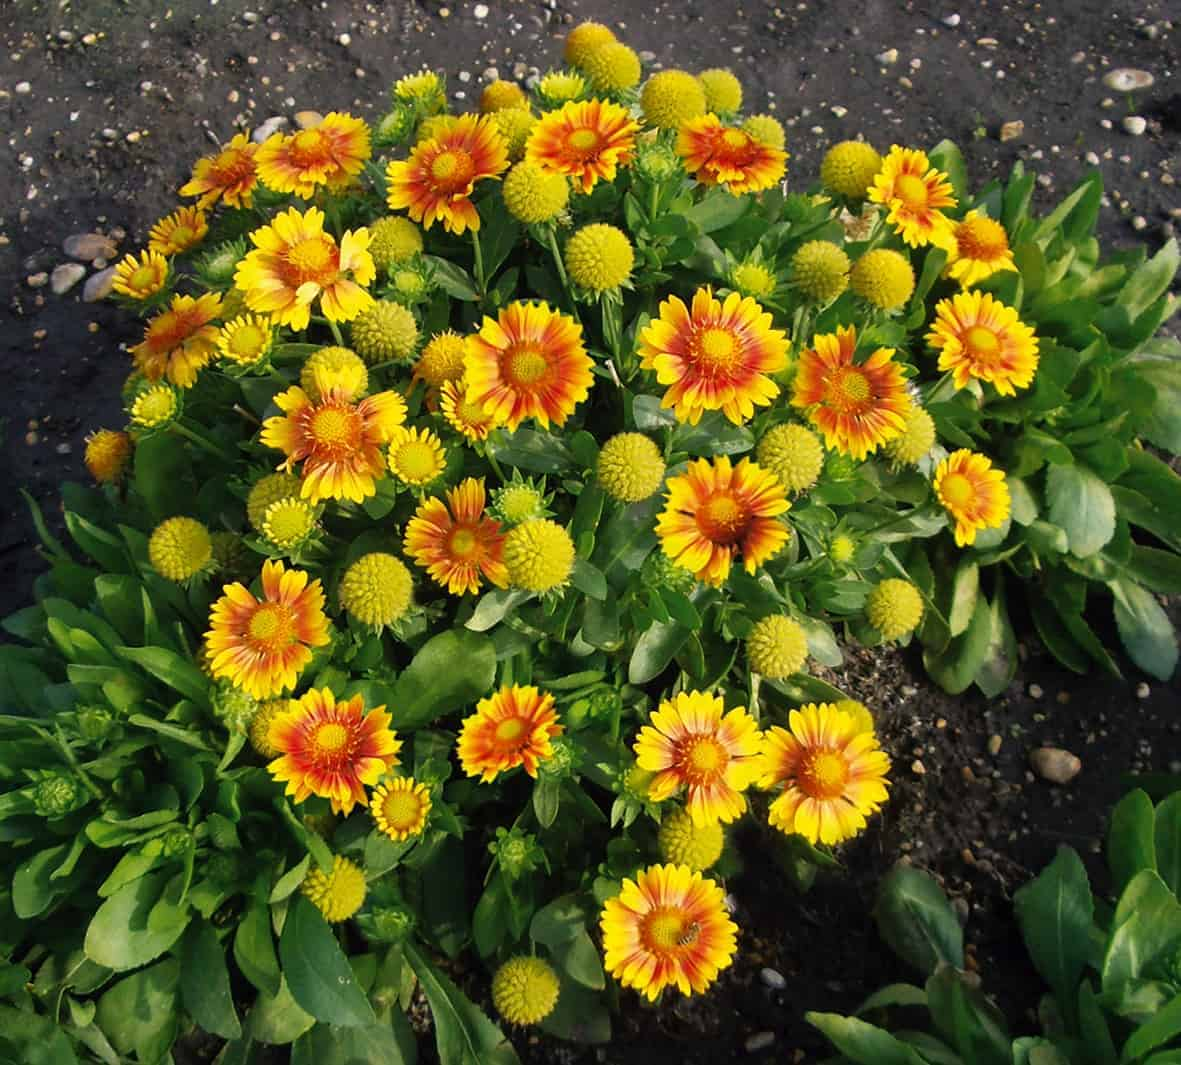 Gaillardia Arizona Apricot All America Selections